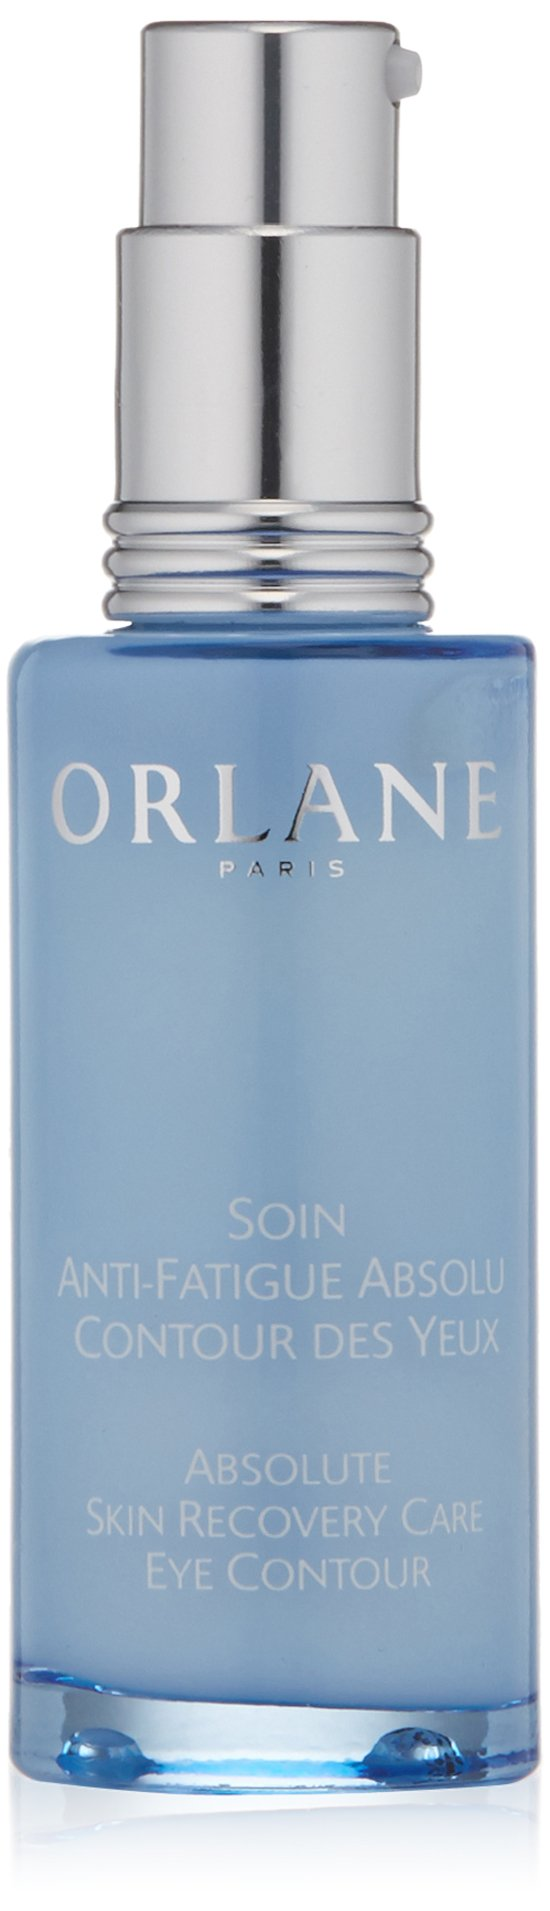 ORLANE PARIS Absolute Skin Recovery Care Eye Contour, 0.5 fl. oz.